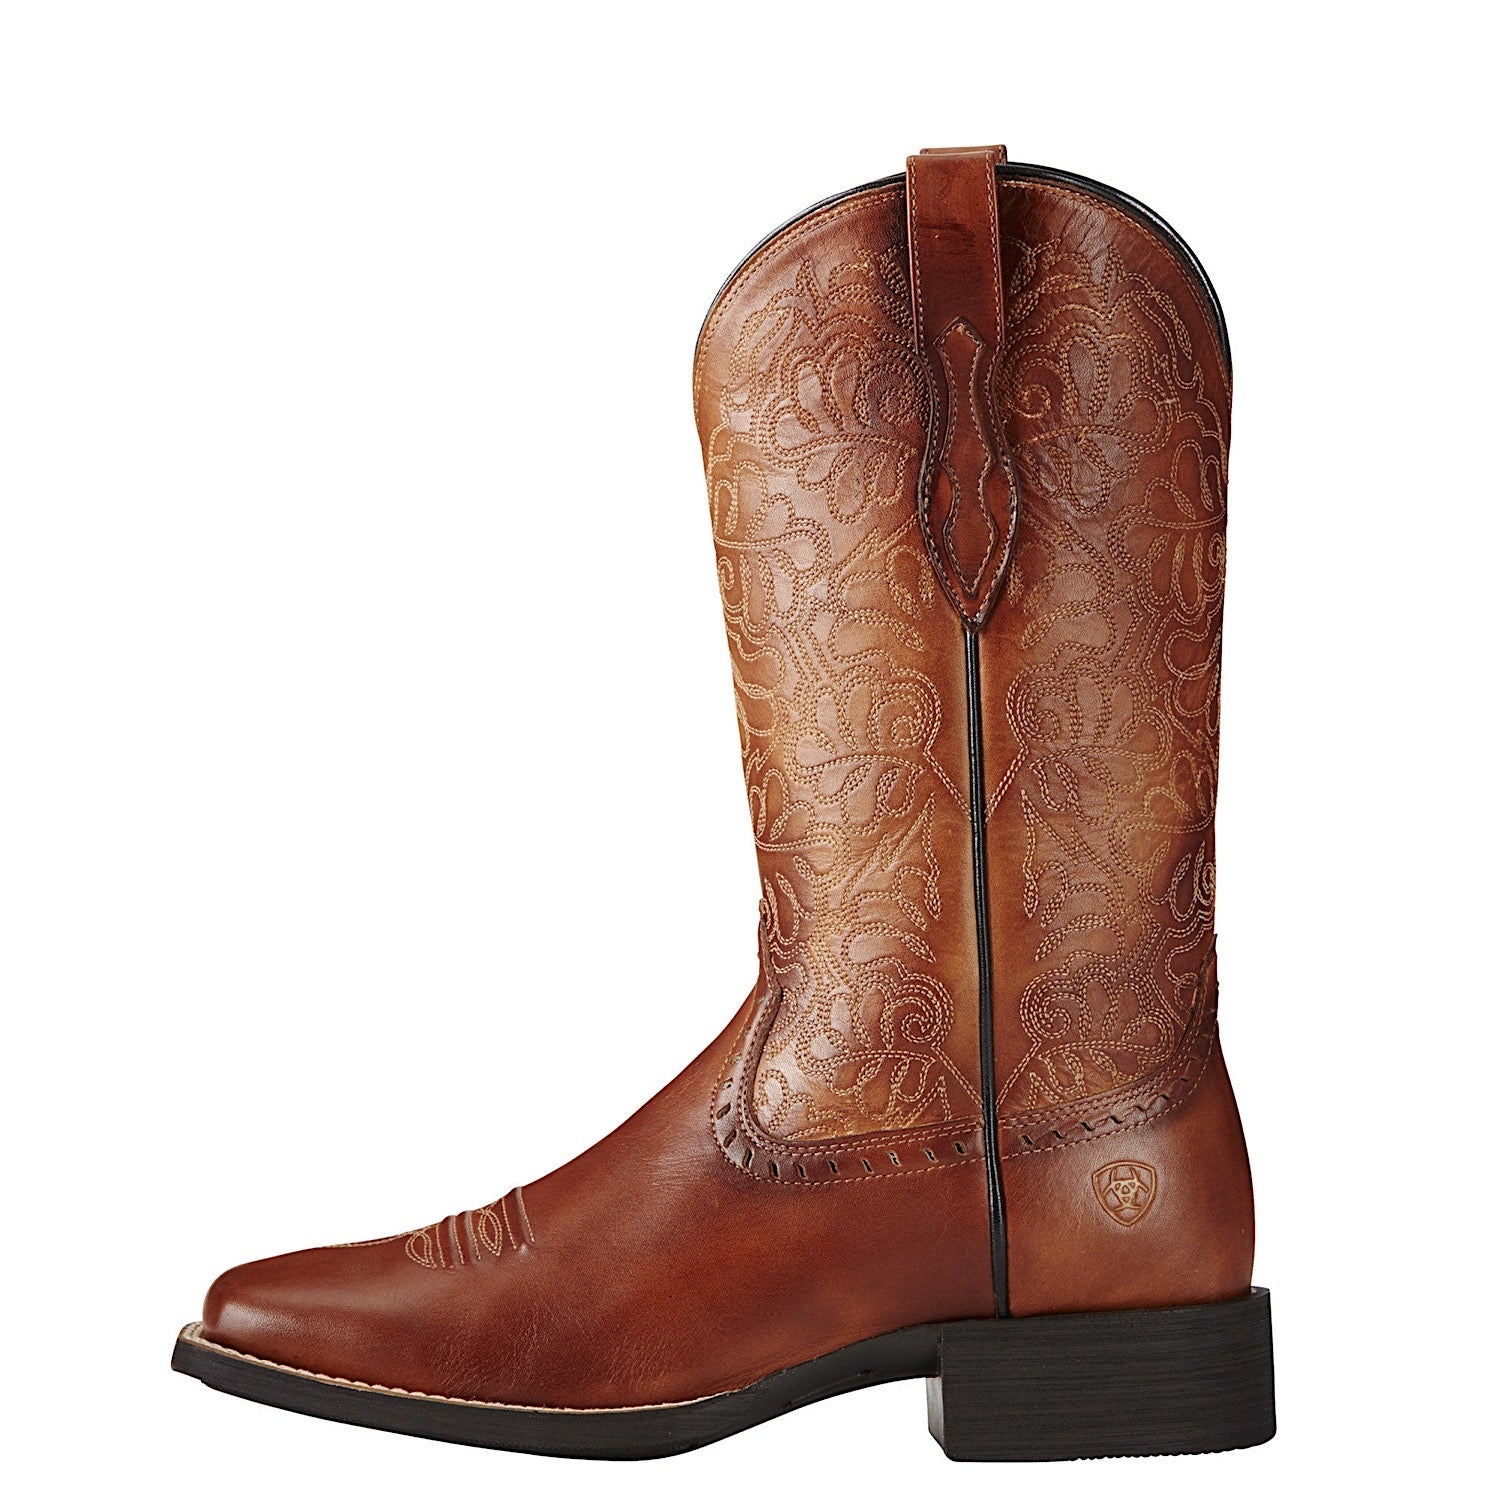 Ariat Naturally Rich Round Up Remuda Boots